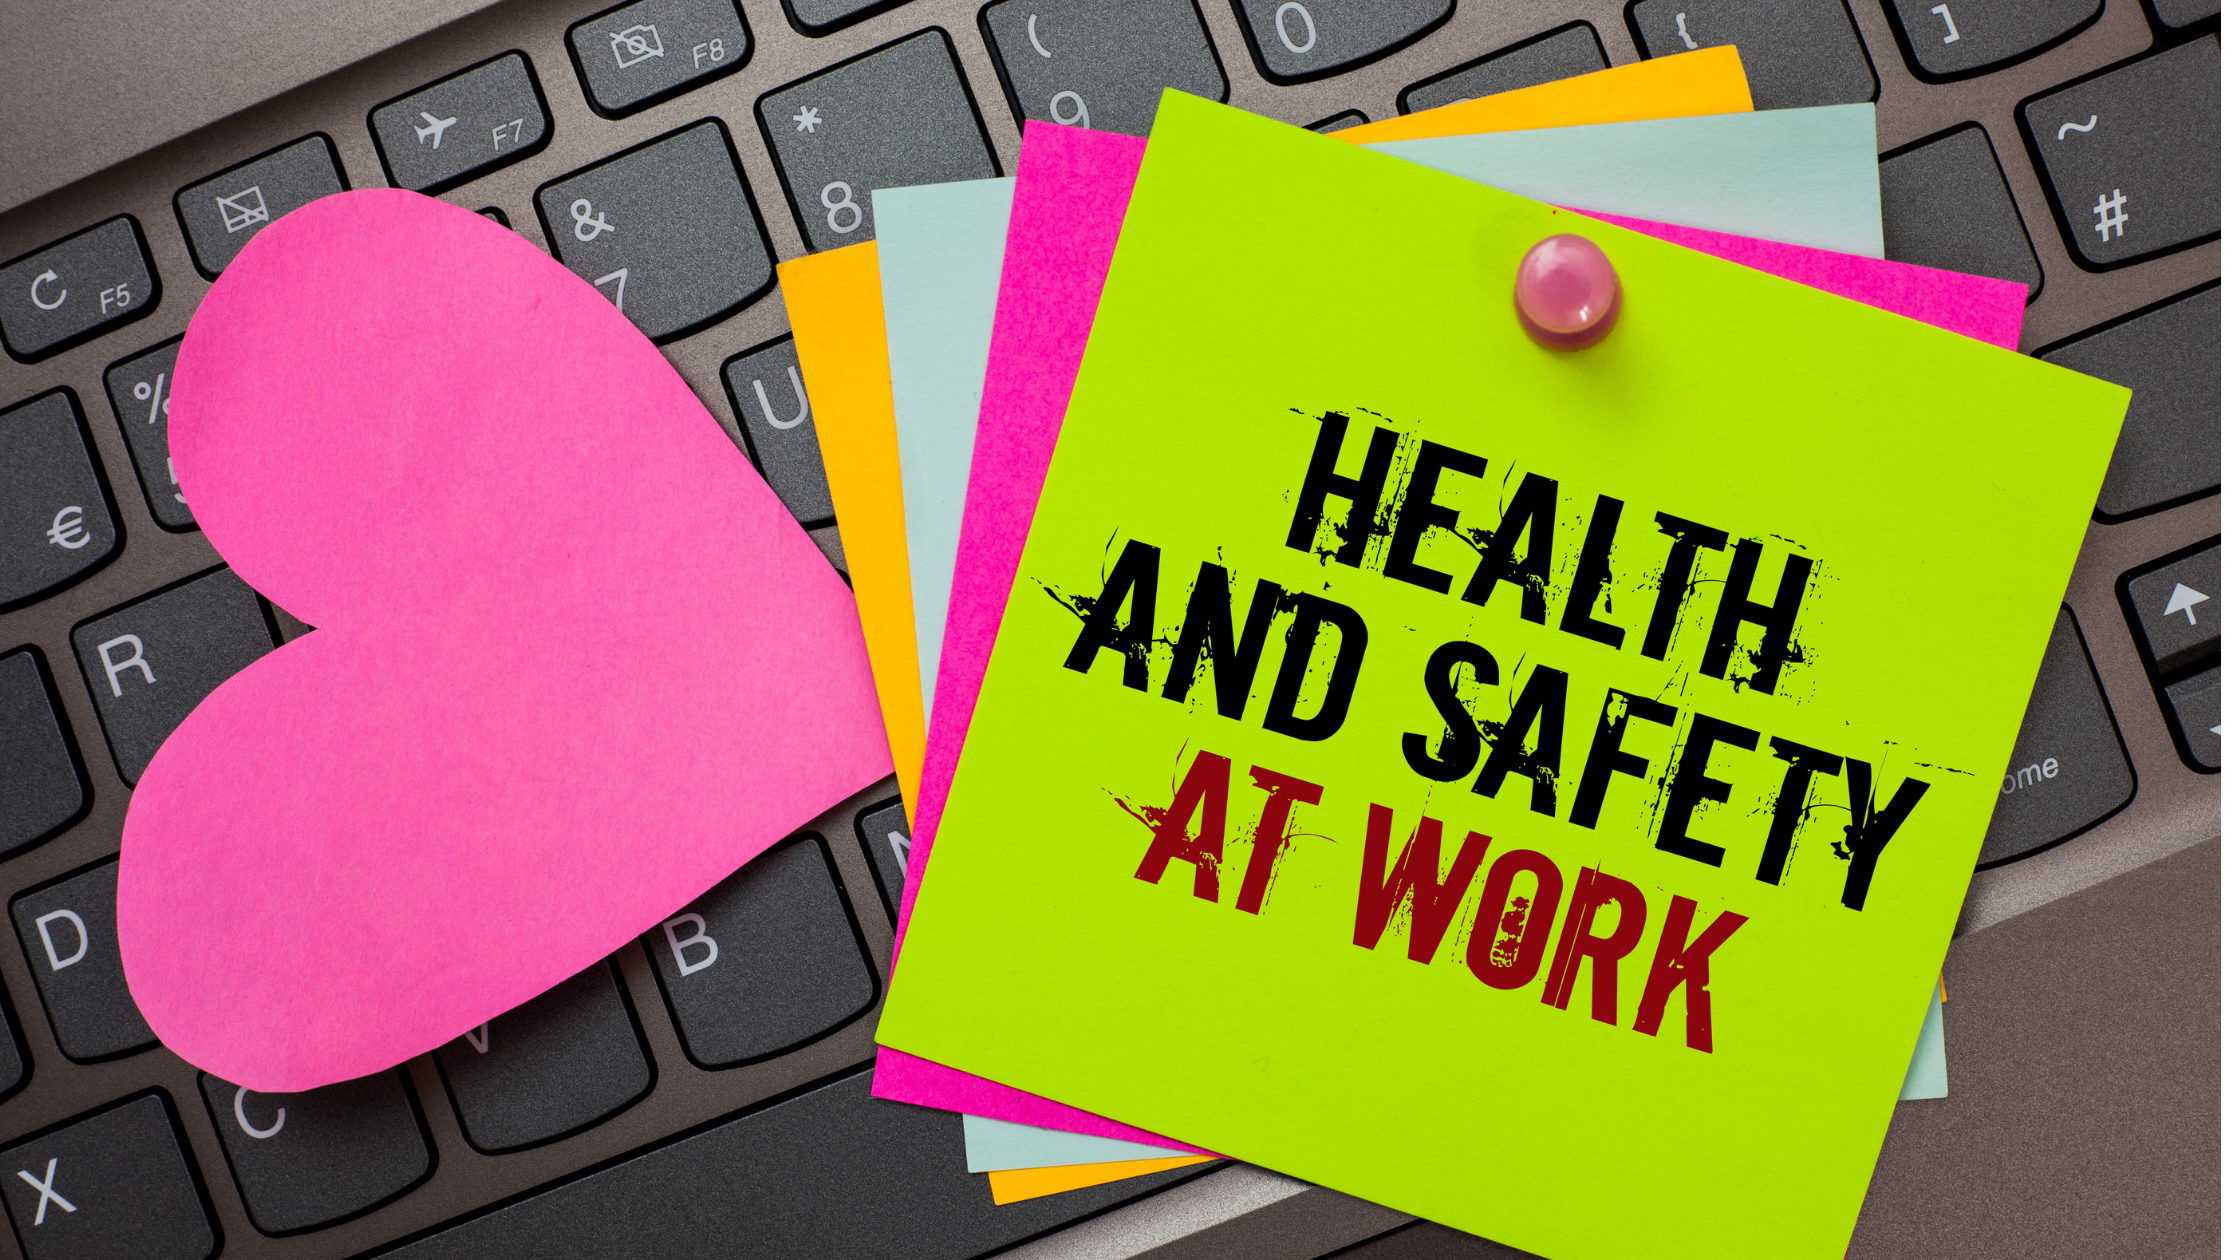 Stay Home, Save Lives: A Recent Arbitration Decision Confirms Public Health's Guidance